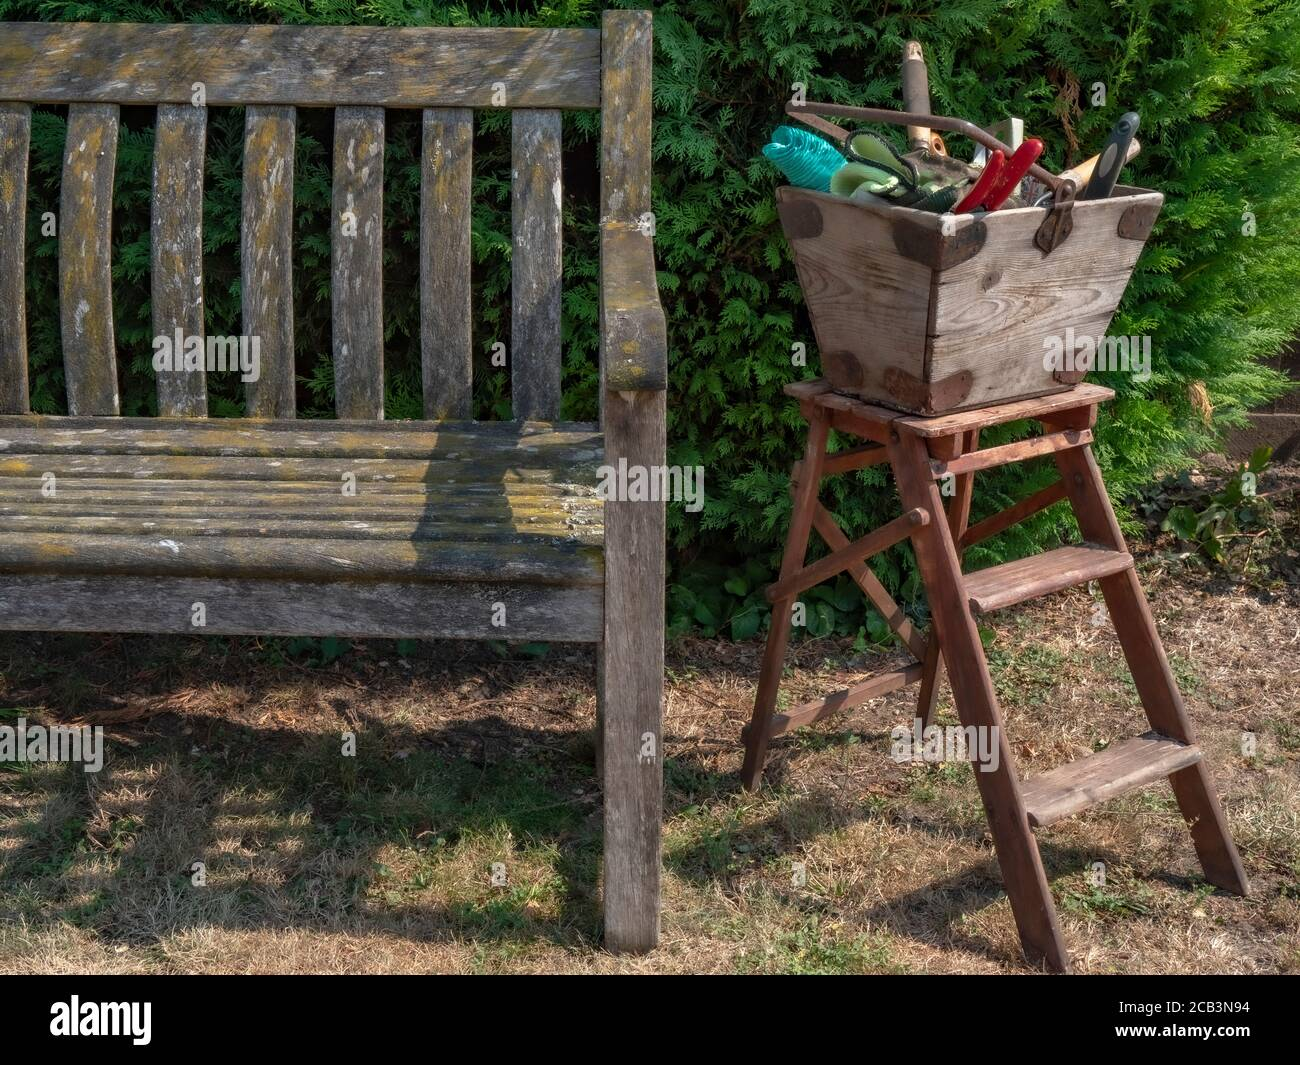 Old wooden garden tools box, holding a variety of gardening implements, on top of a small stepladder, next to an old wooden bench, in a garden / yard. Stock Photo